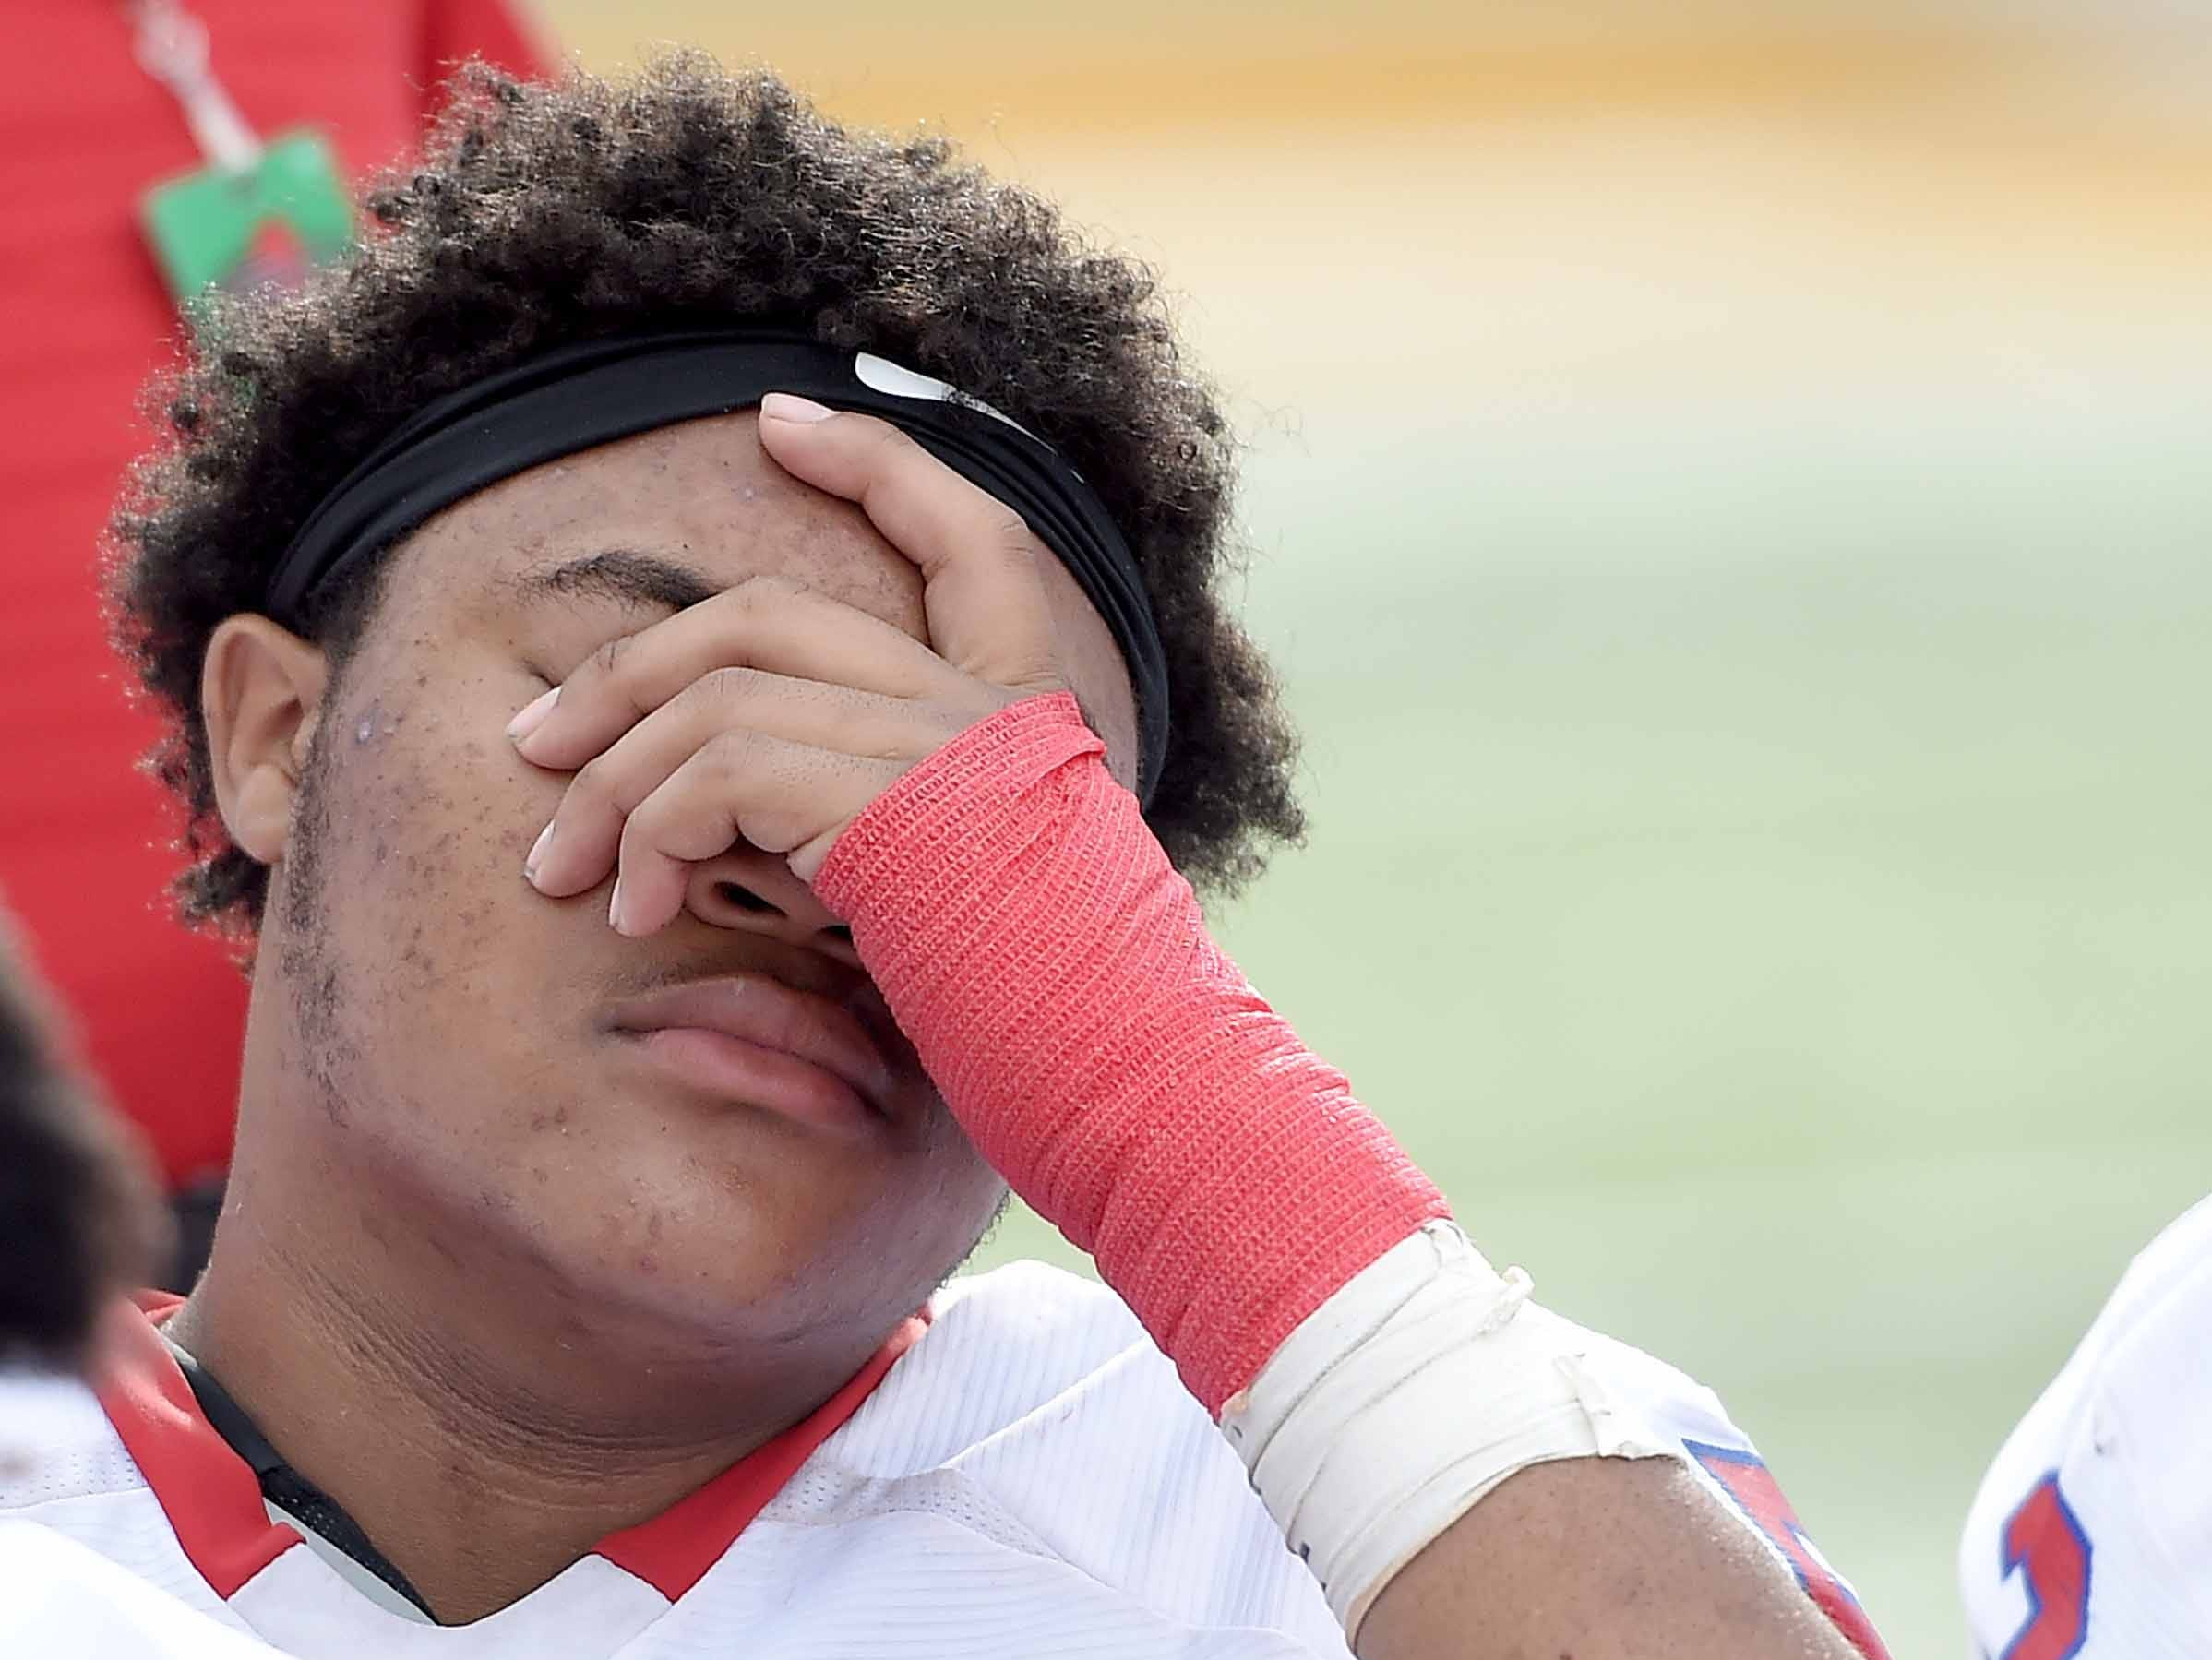 The dejection of losing to Water Valley was apparent on the faces of the Seminary Bulldogs after the game on Friday, November 20, 2018, in the MHSAA BlueCross BlueShield Gridiron Classic High School Football Championships in M.M. Roberts Stadium on the University of Southern Mississippi campus in Hattiesburg, Miss.